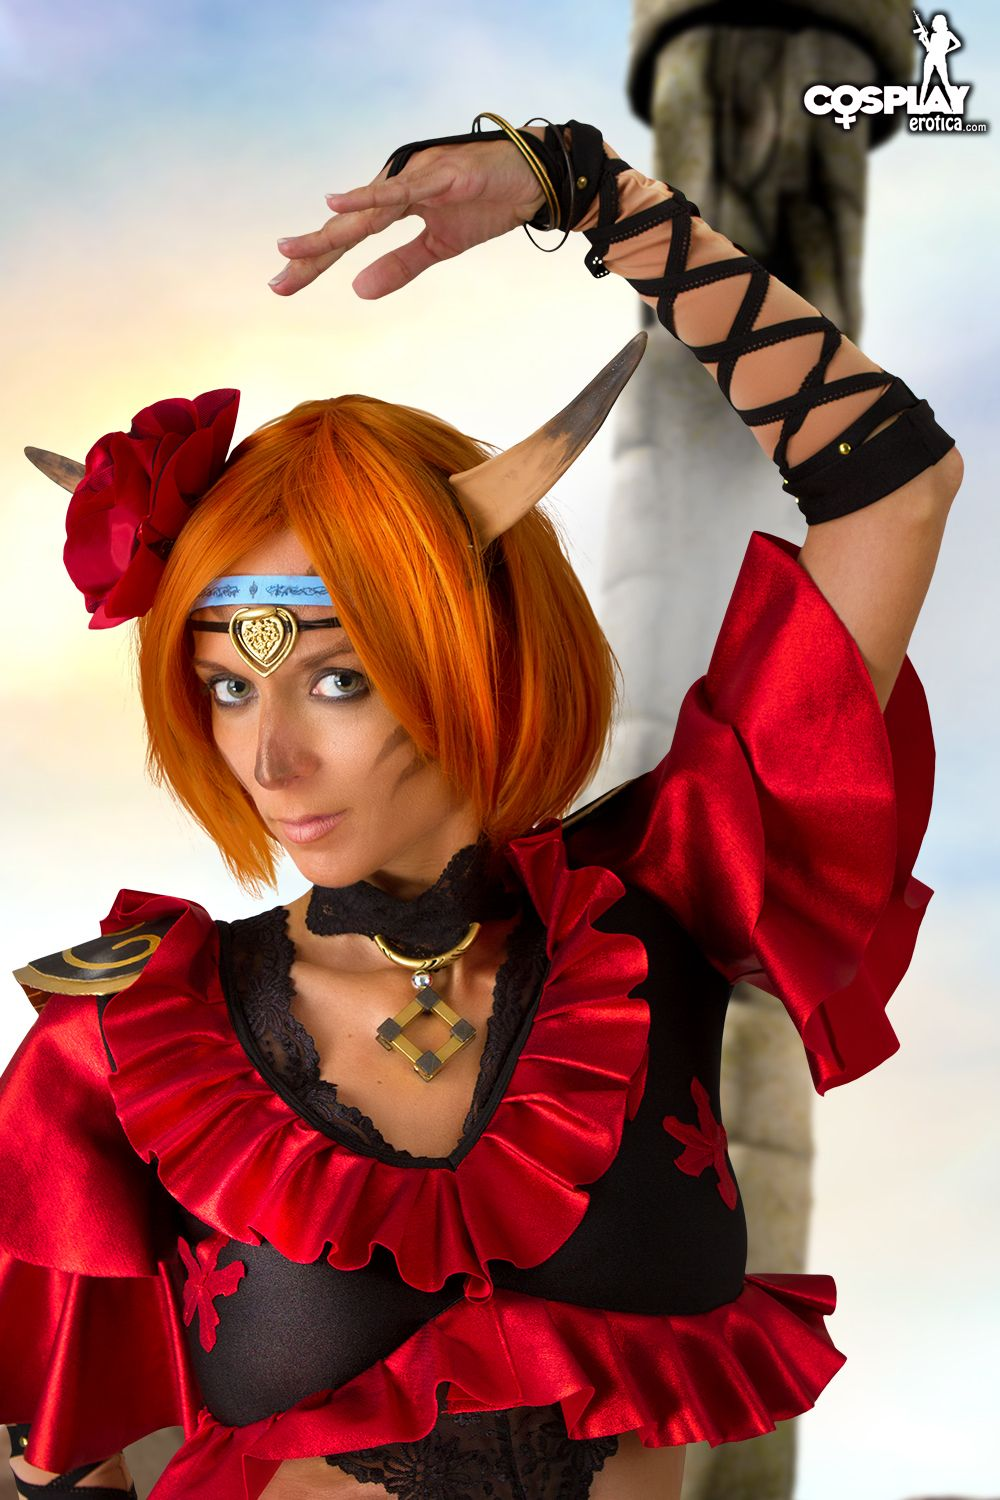 Cosplay Erotica's Lana Looks Purrfect As Mithra